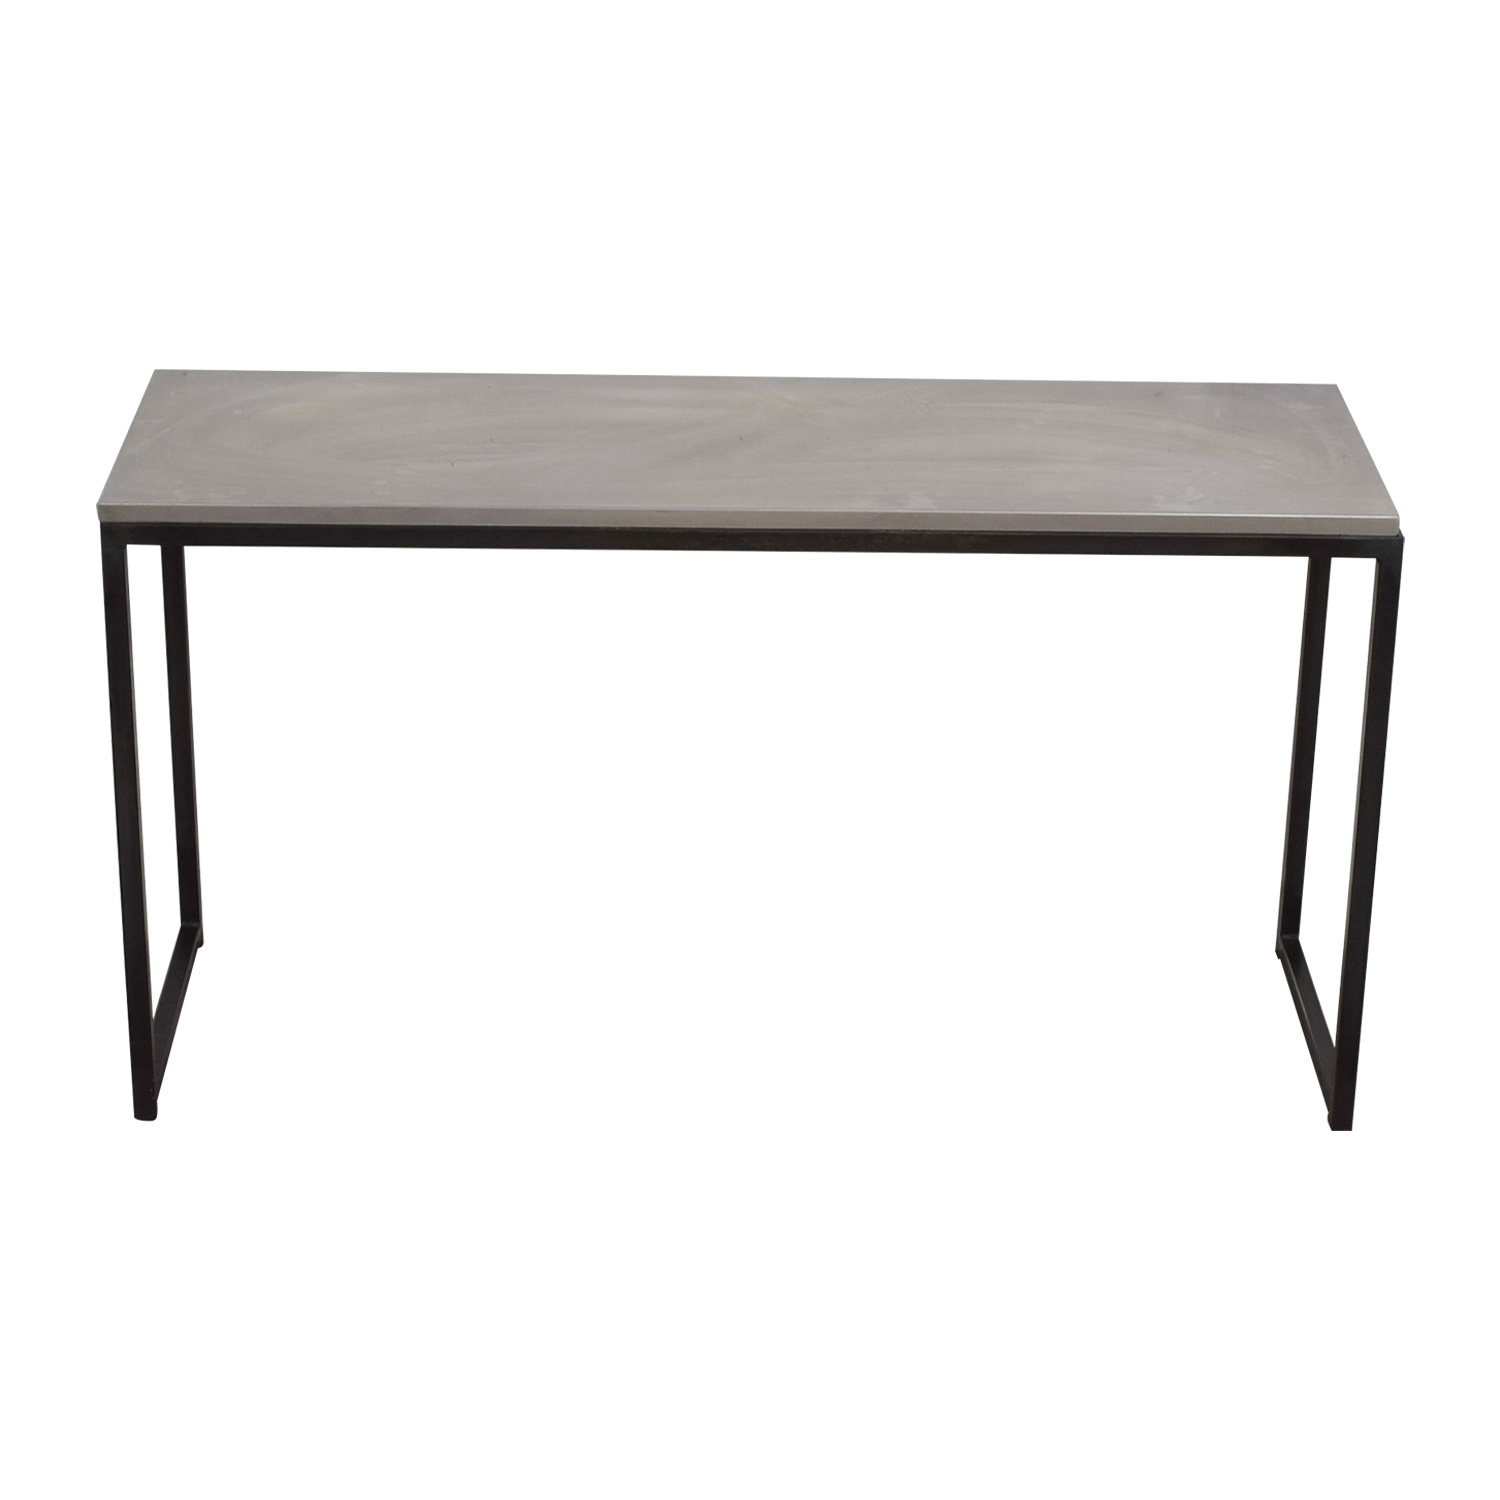 buy Room and Board Room & Board Metal Table online